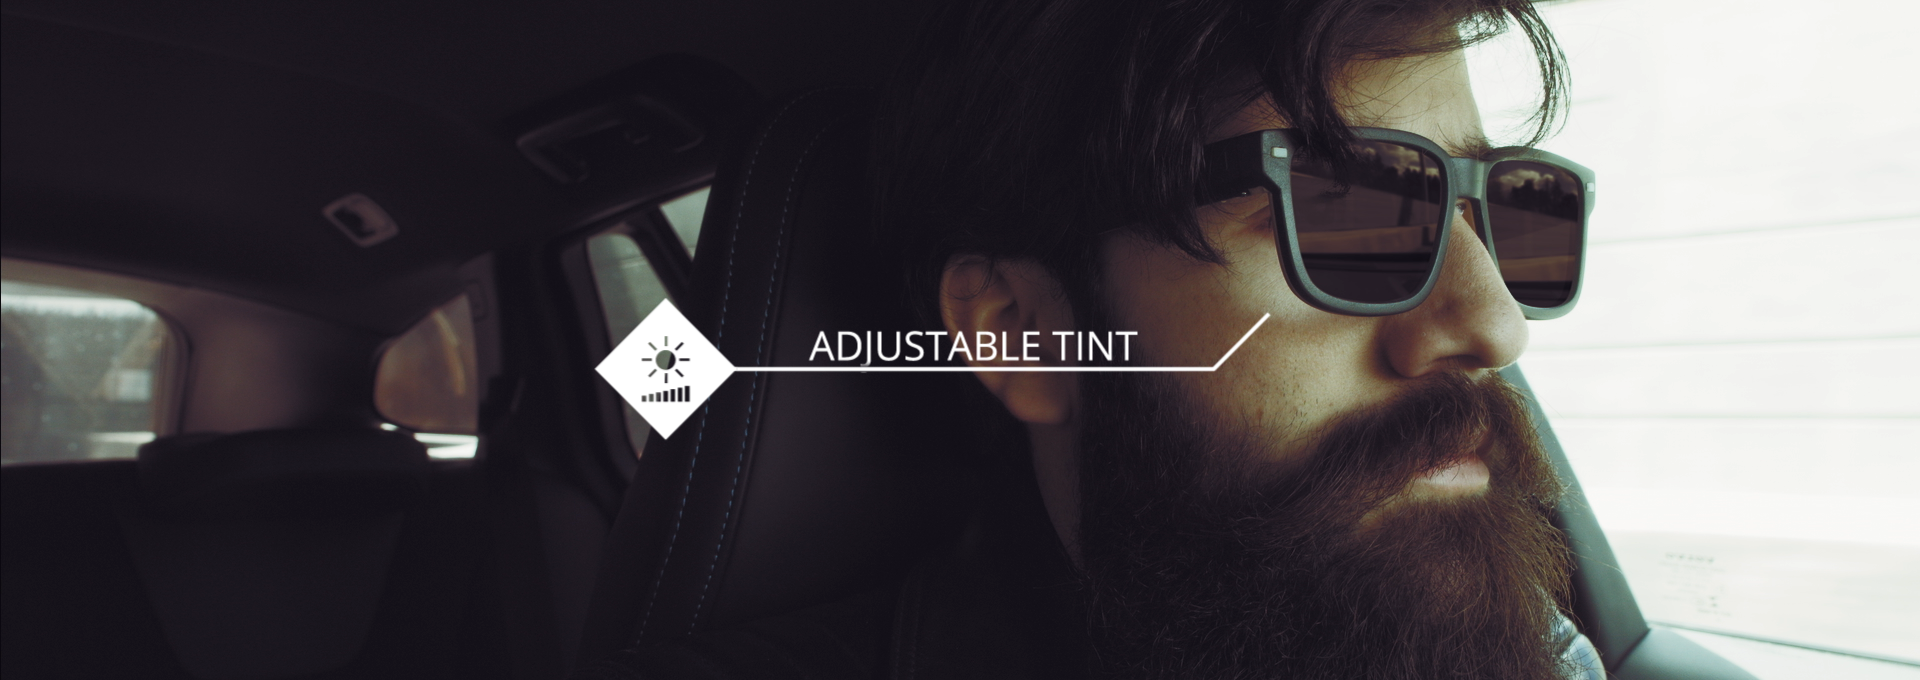 Adjustable_tint